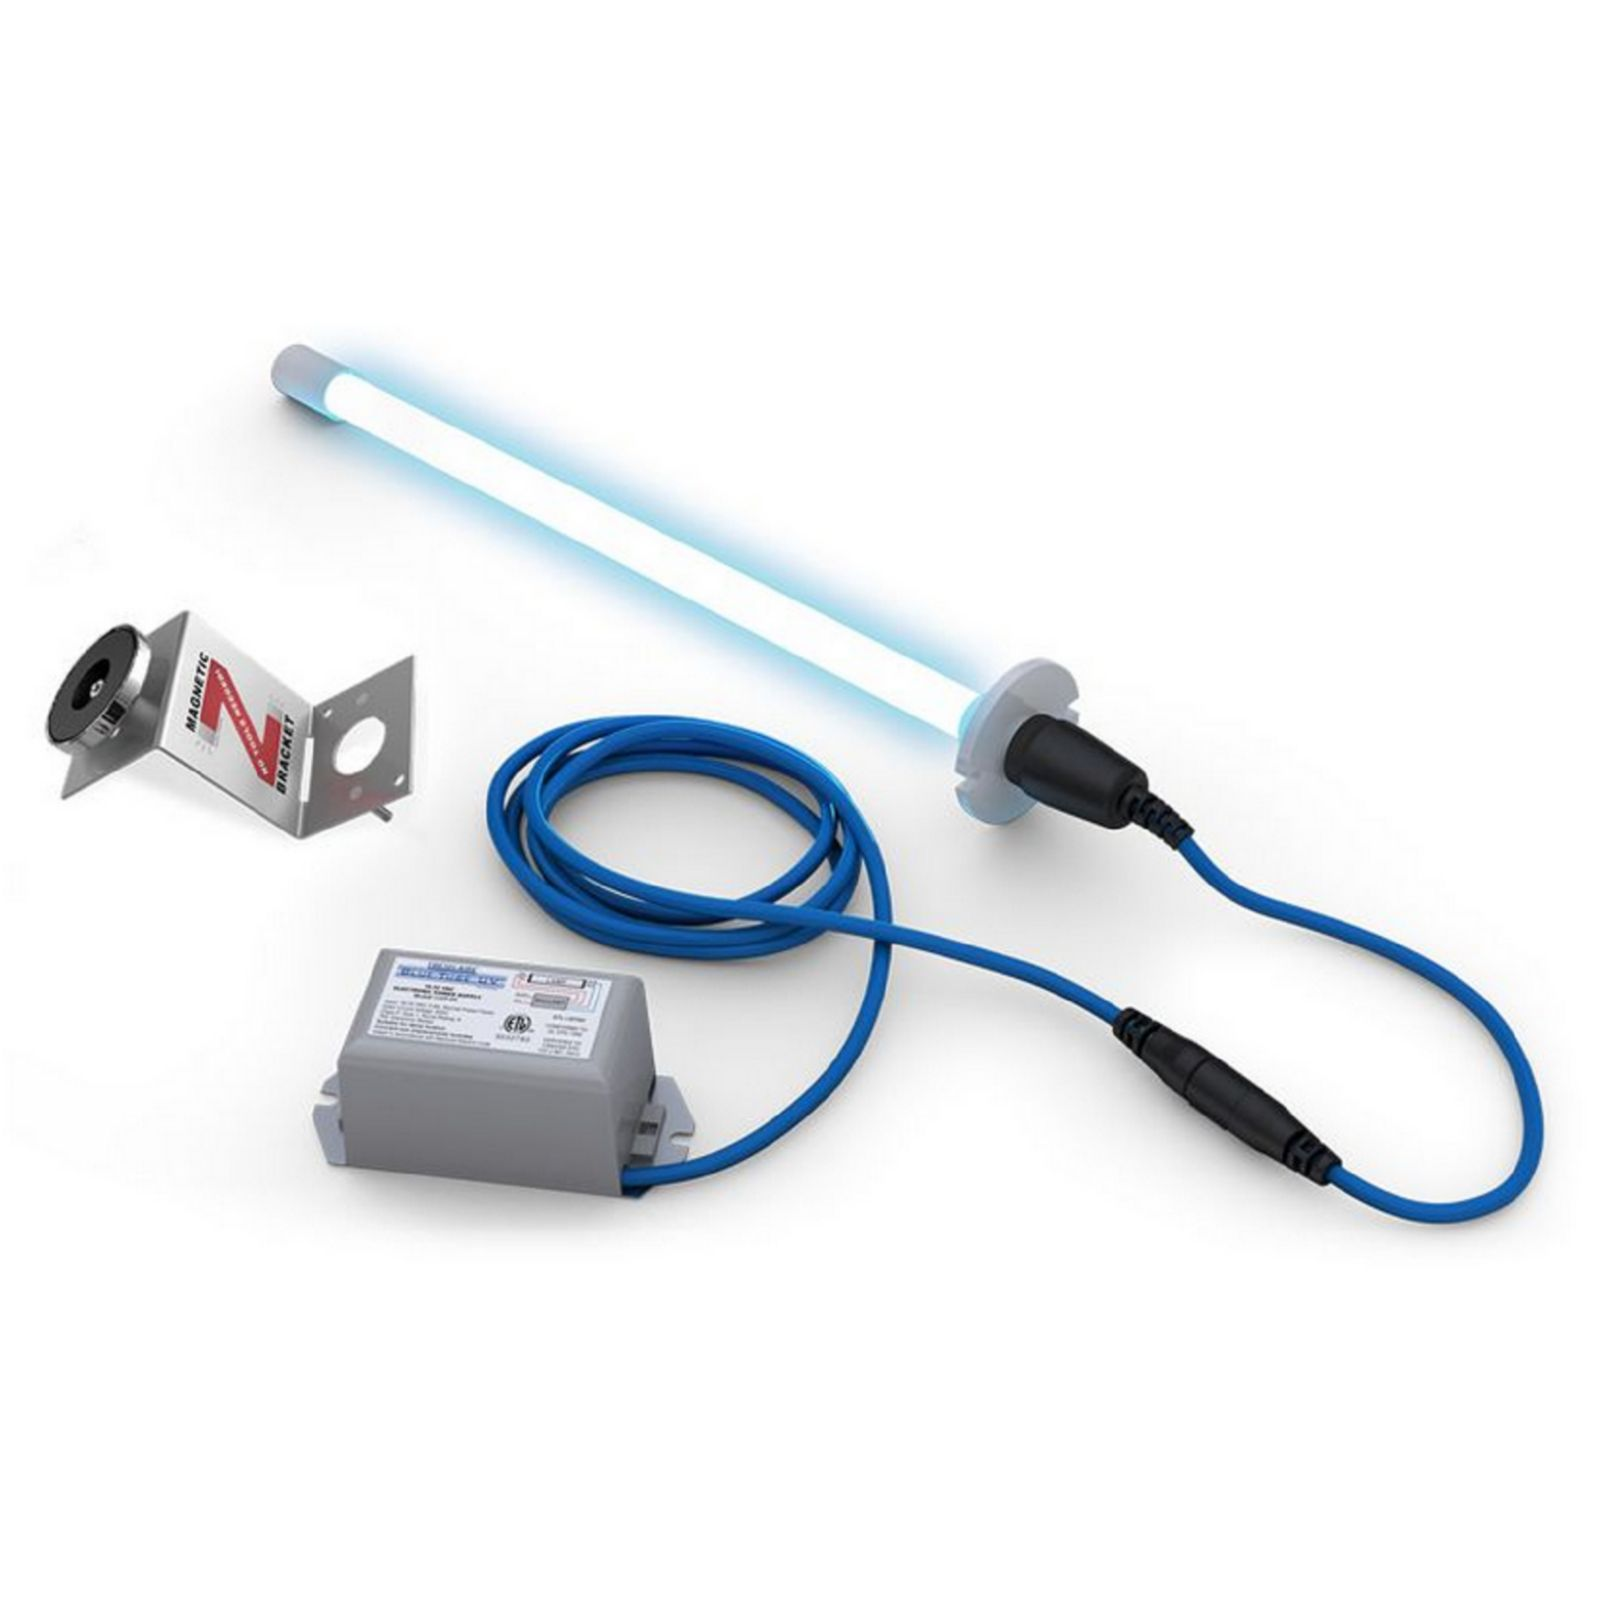 Fresh Aire TUV-BTER2-OS - Blue-Tube UV from Fresh-Aire UV, 18-32 VAC power supply and 2 year odor control UV-C lamp.